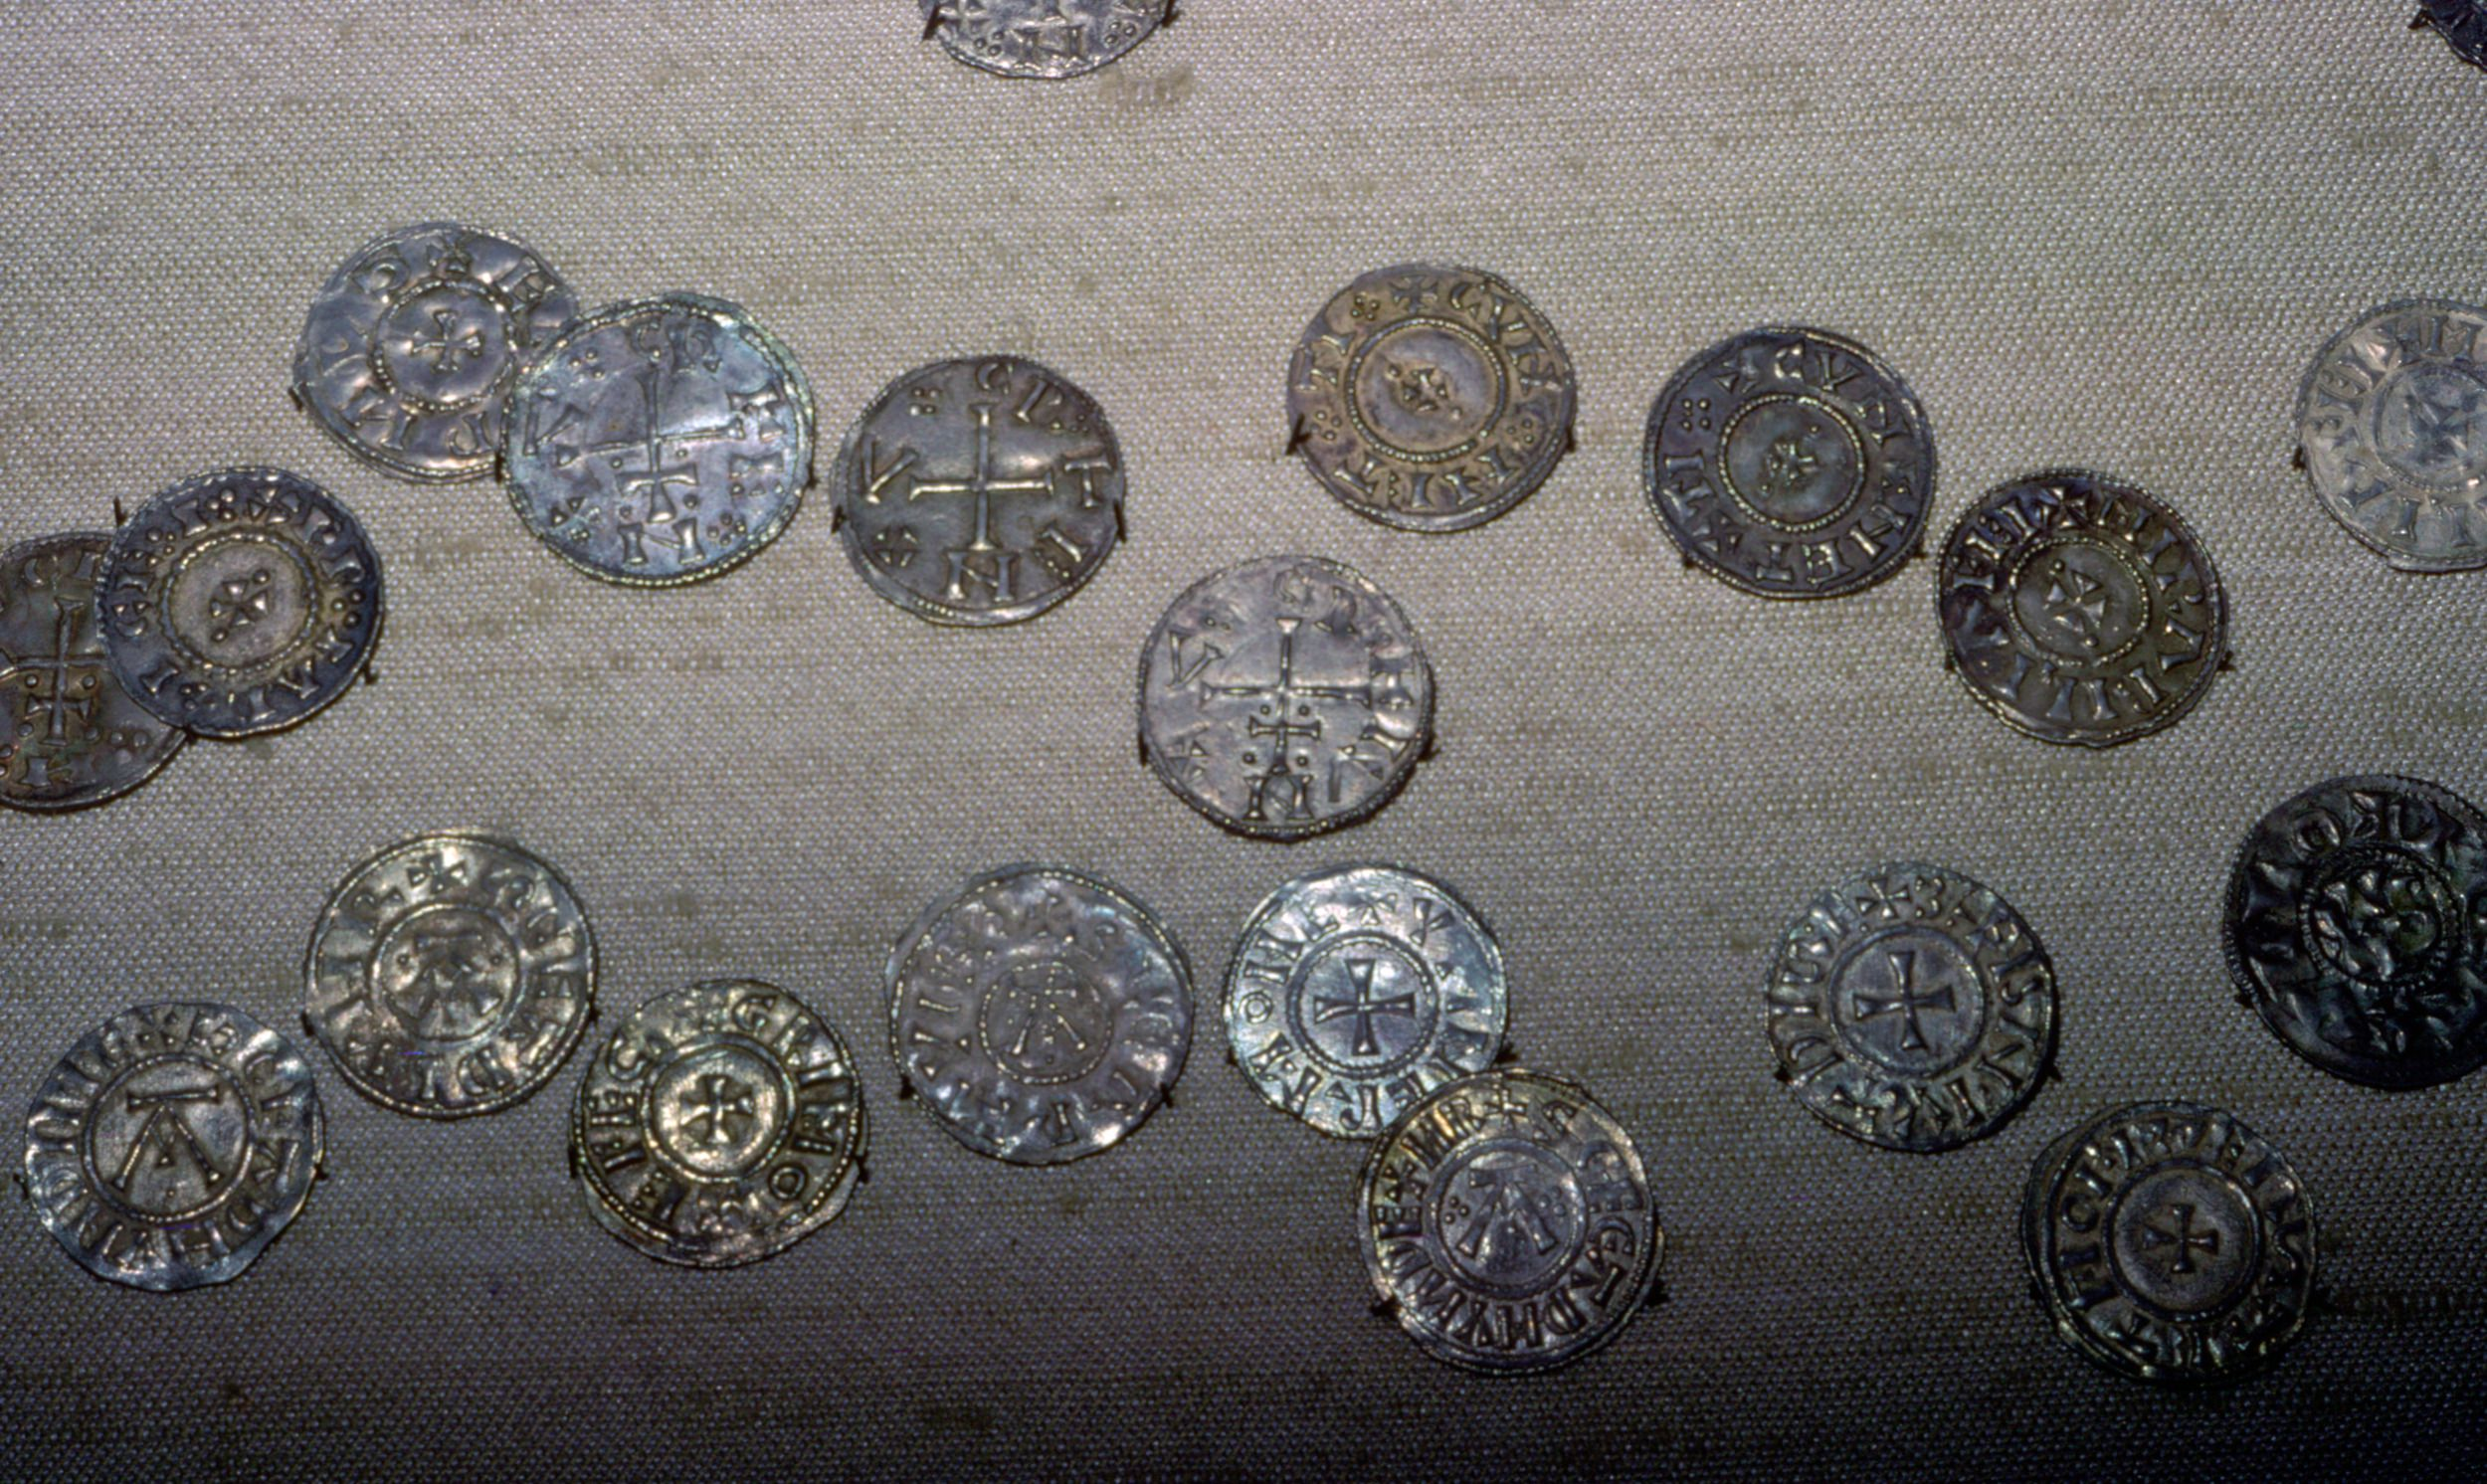 Coins from the Cuerdale Hoard